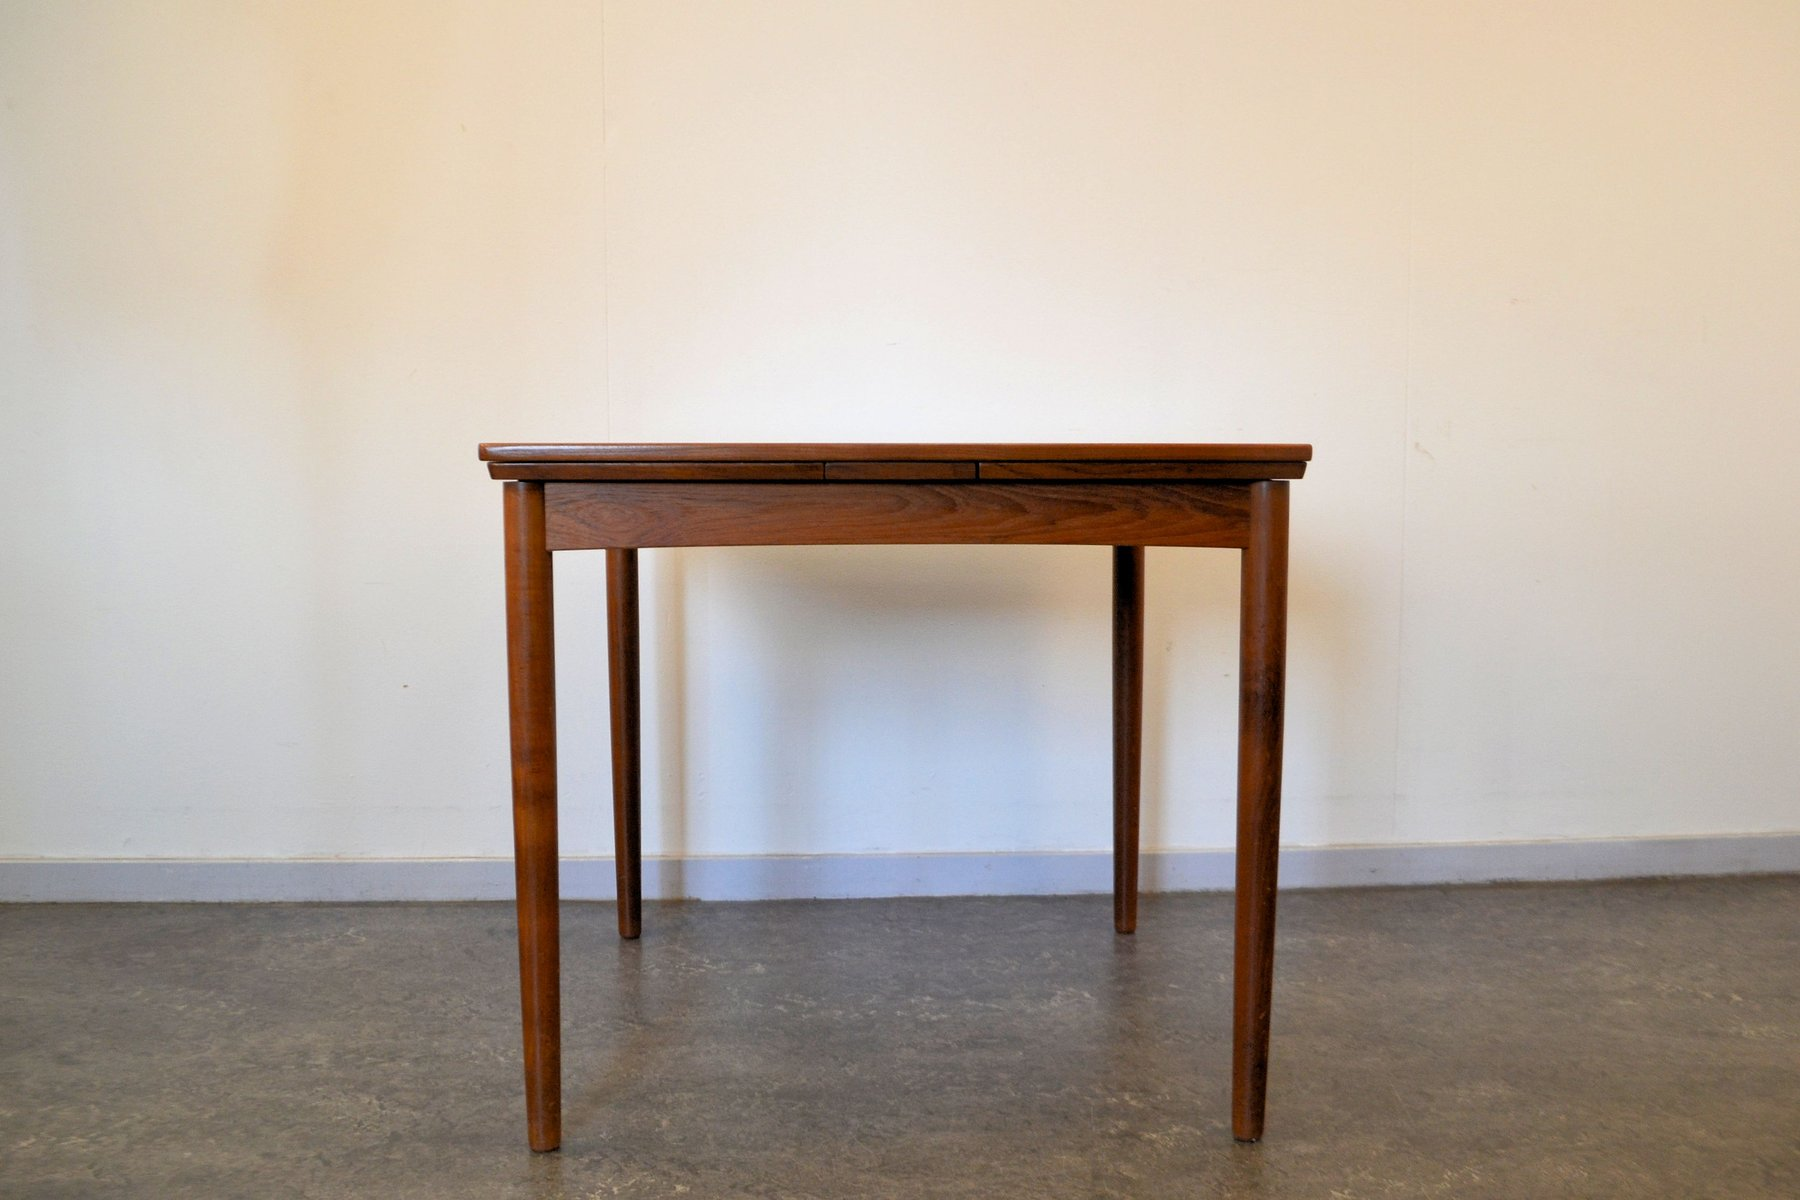 Teak extension dining table in excellent condition very clean and - Vintage Danish Extendable Teak Dining Table By Poul Hundevad